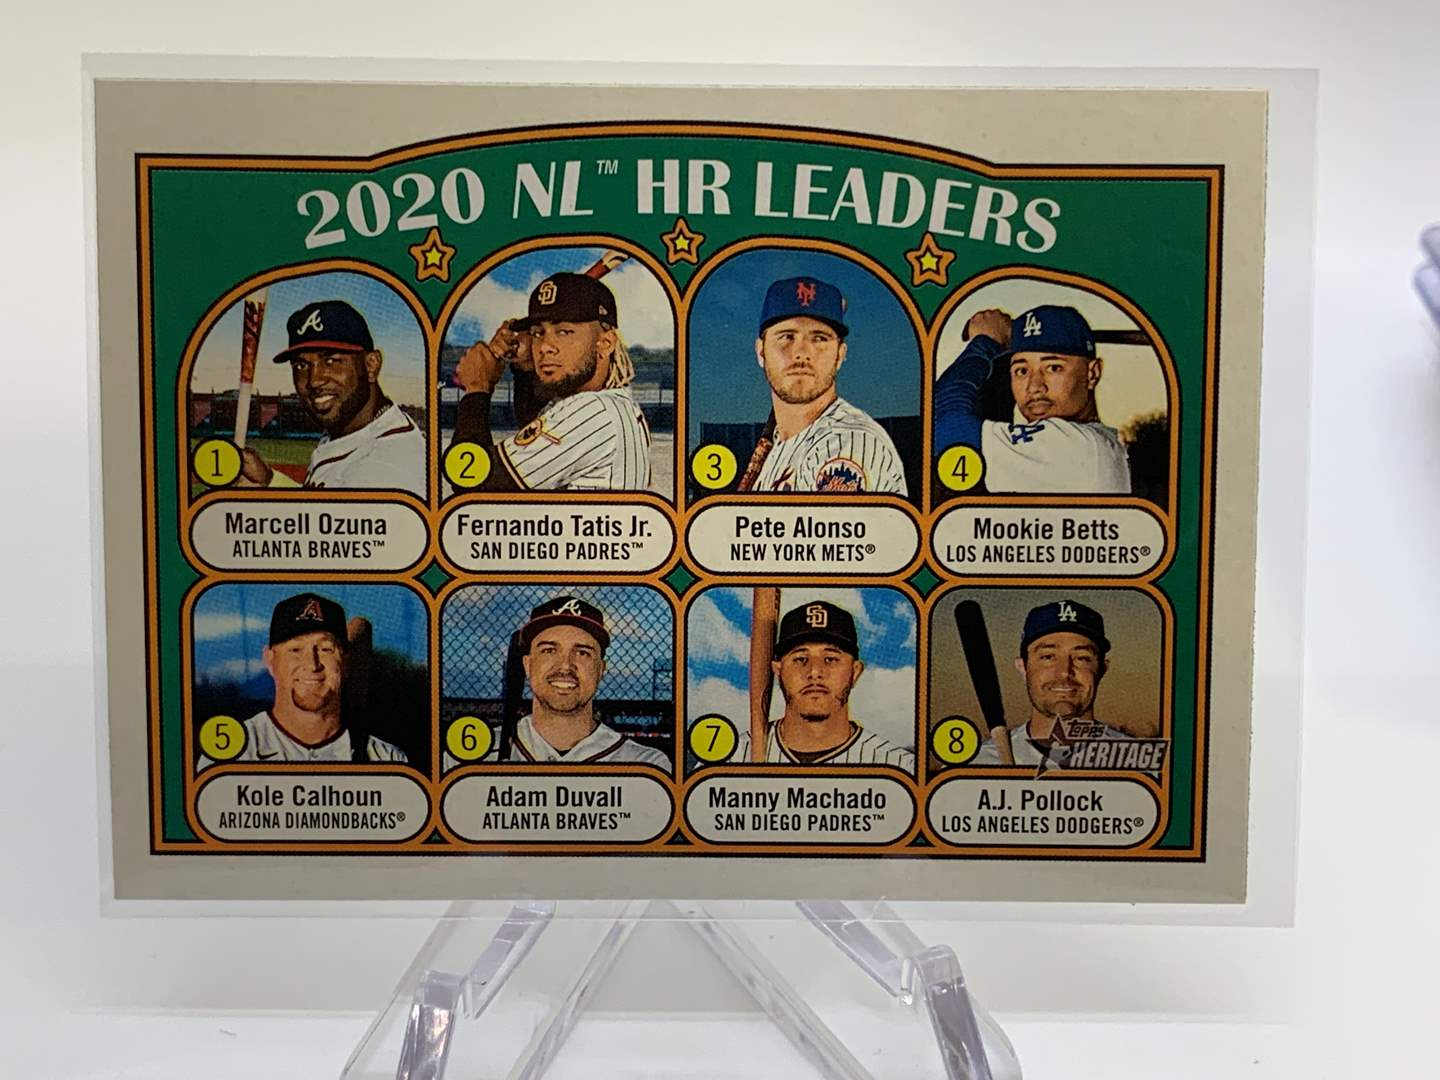 Lot # 68 2021 Topps Heritage 2020 NL HR LEADERS (main image)